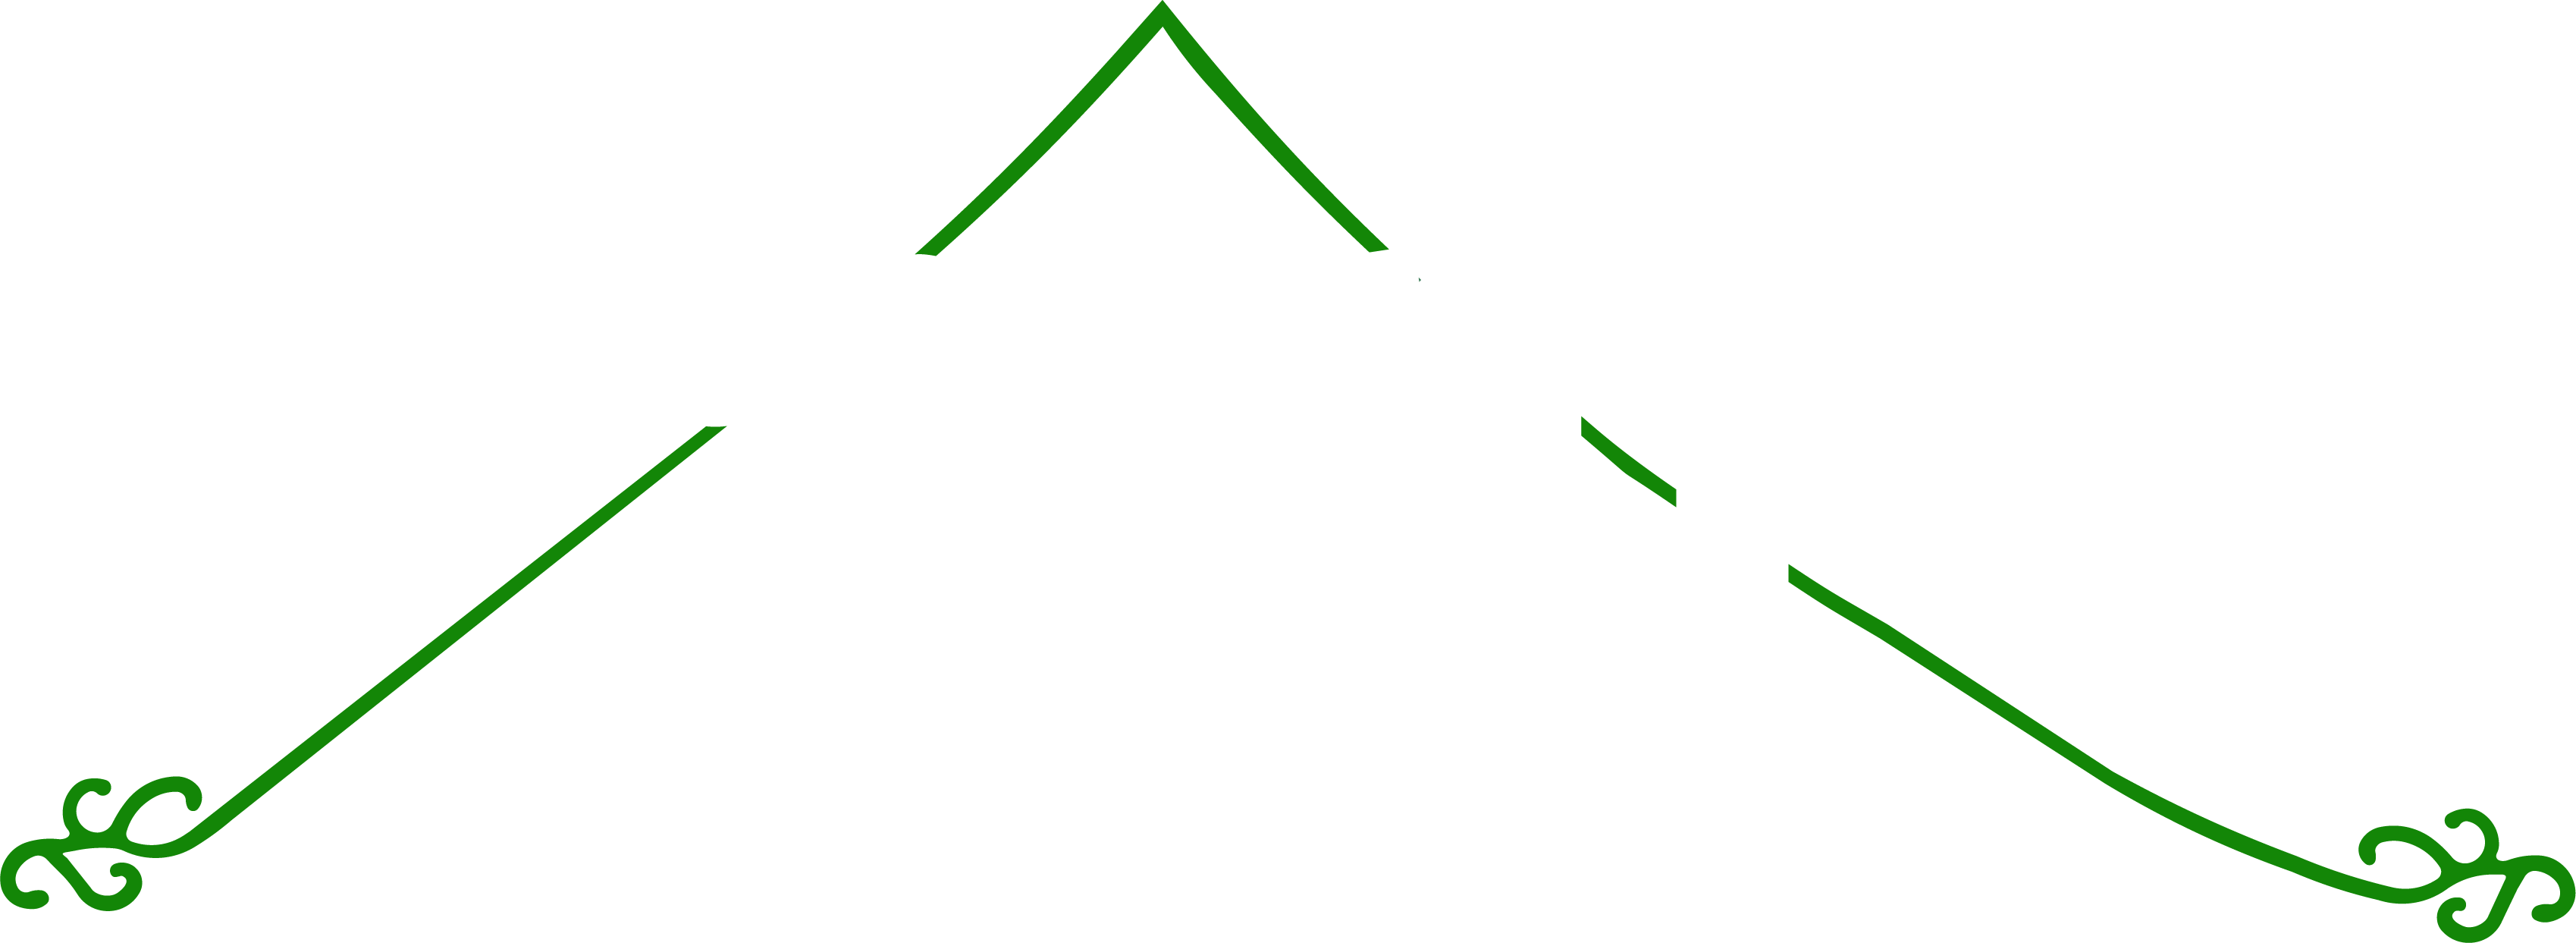 Contact Us Egmont Electrical Commercial Electrical